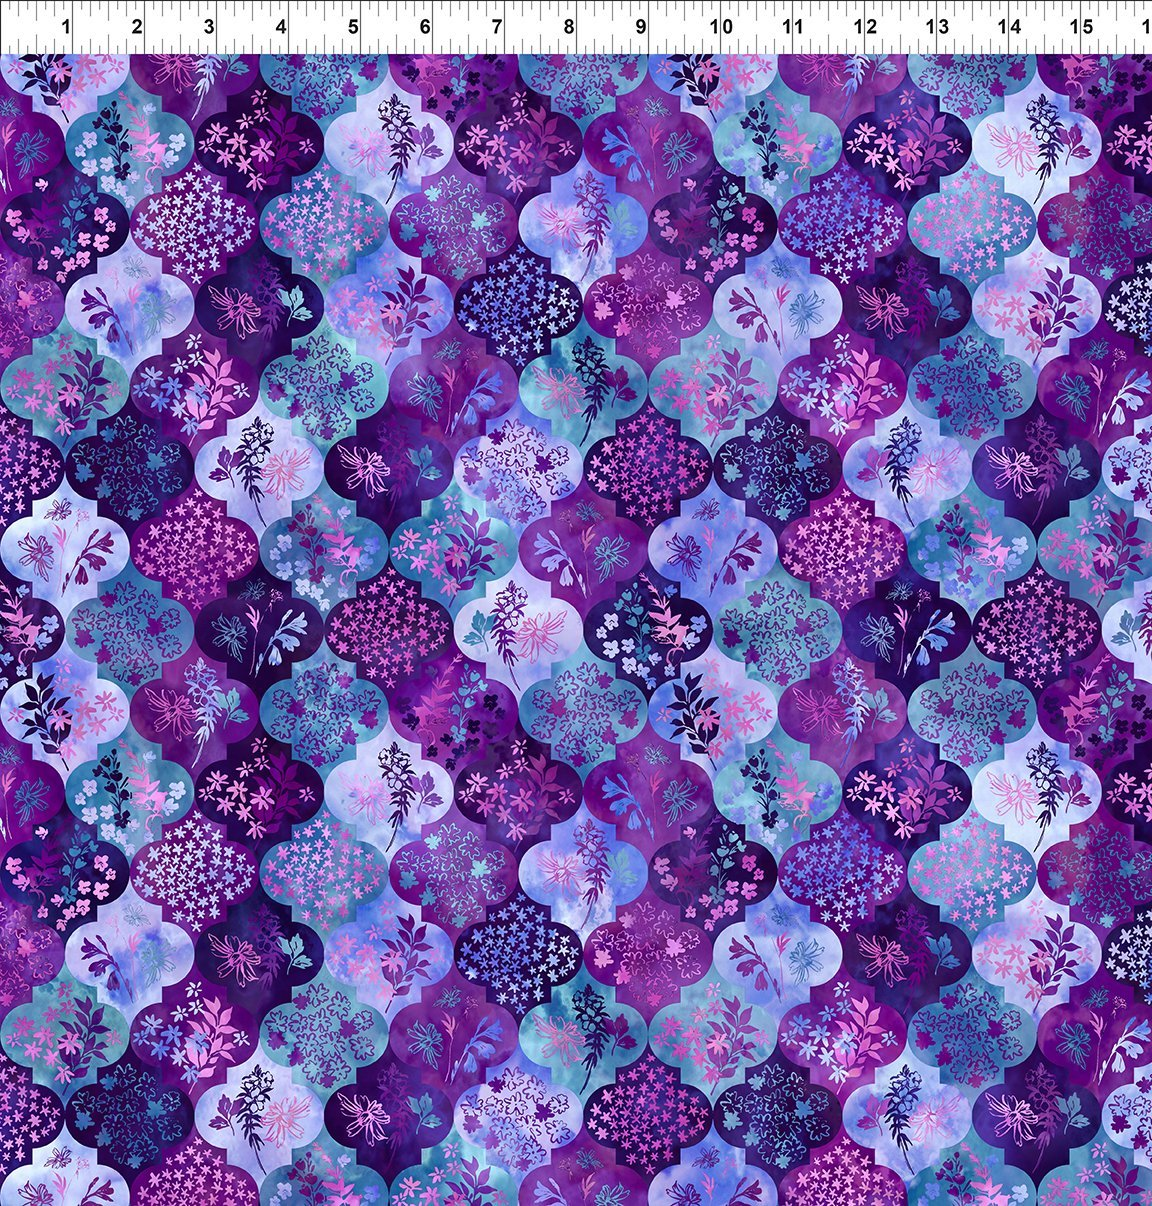 4HVN-3 Haven - Ogee - Purple by Jason Yenter for In The Beginning Fabric